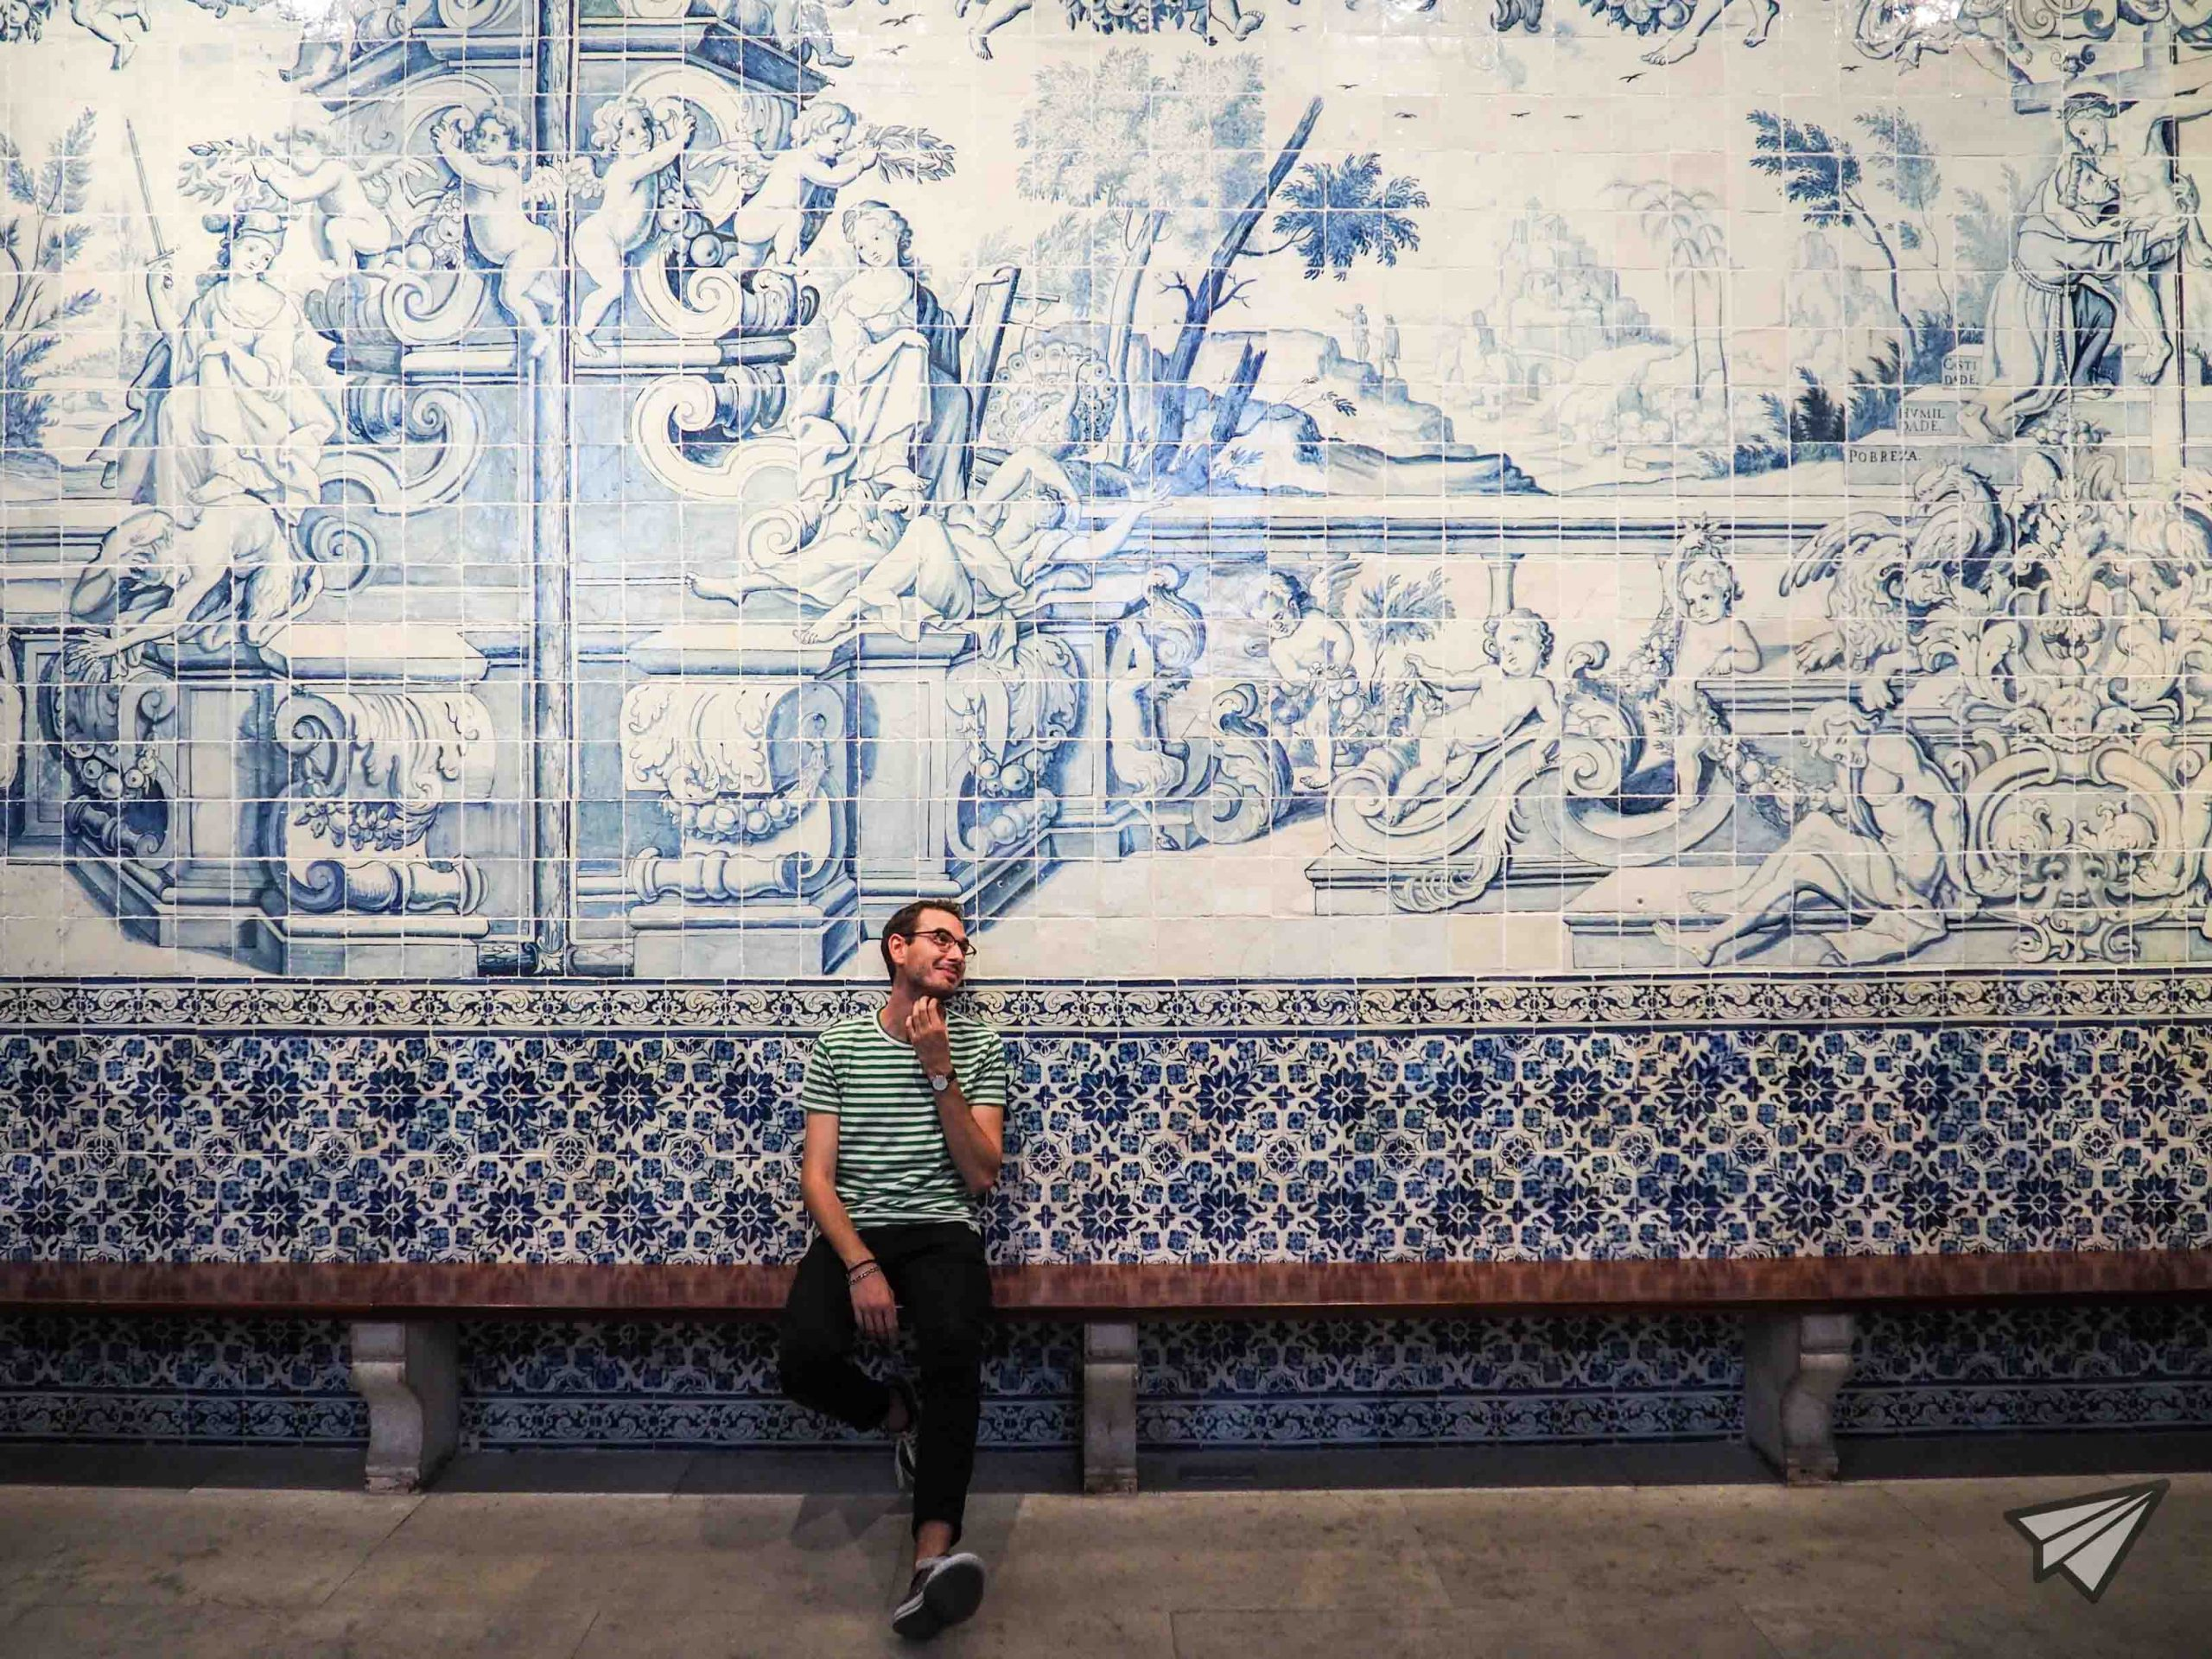 Museu Nacional do Azulejo room